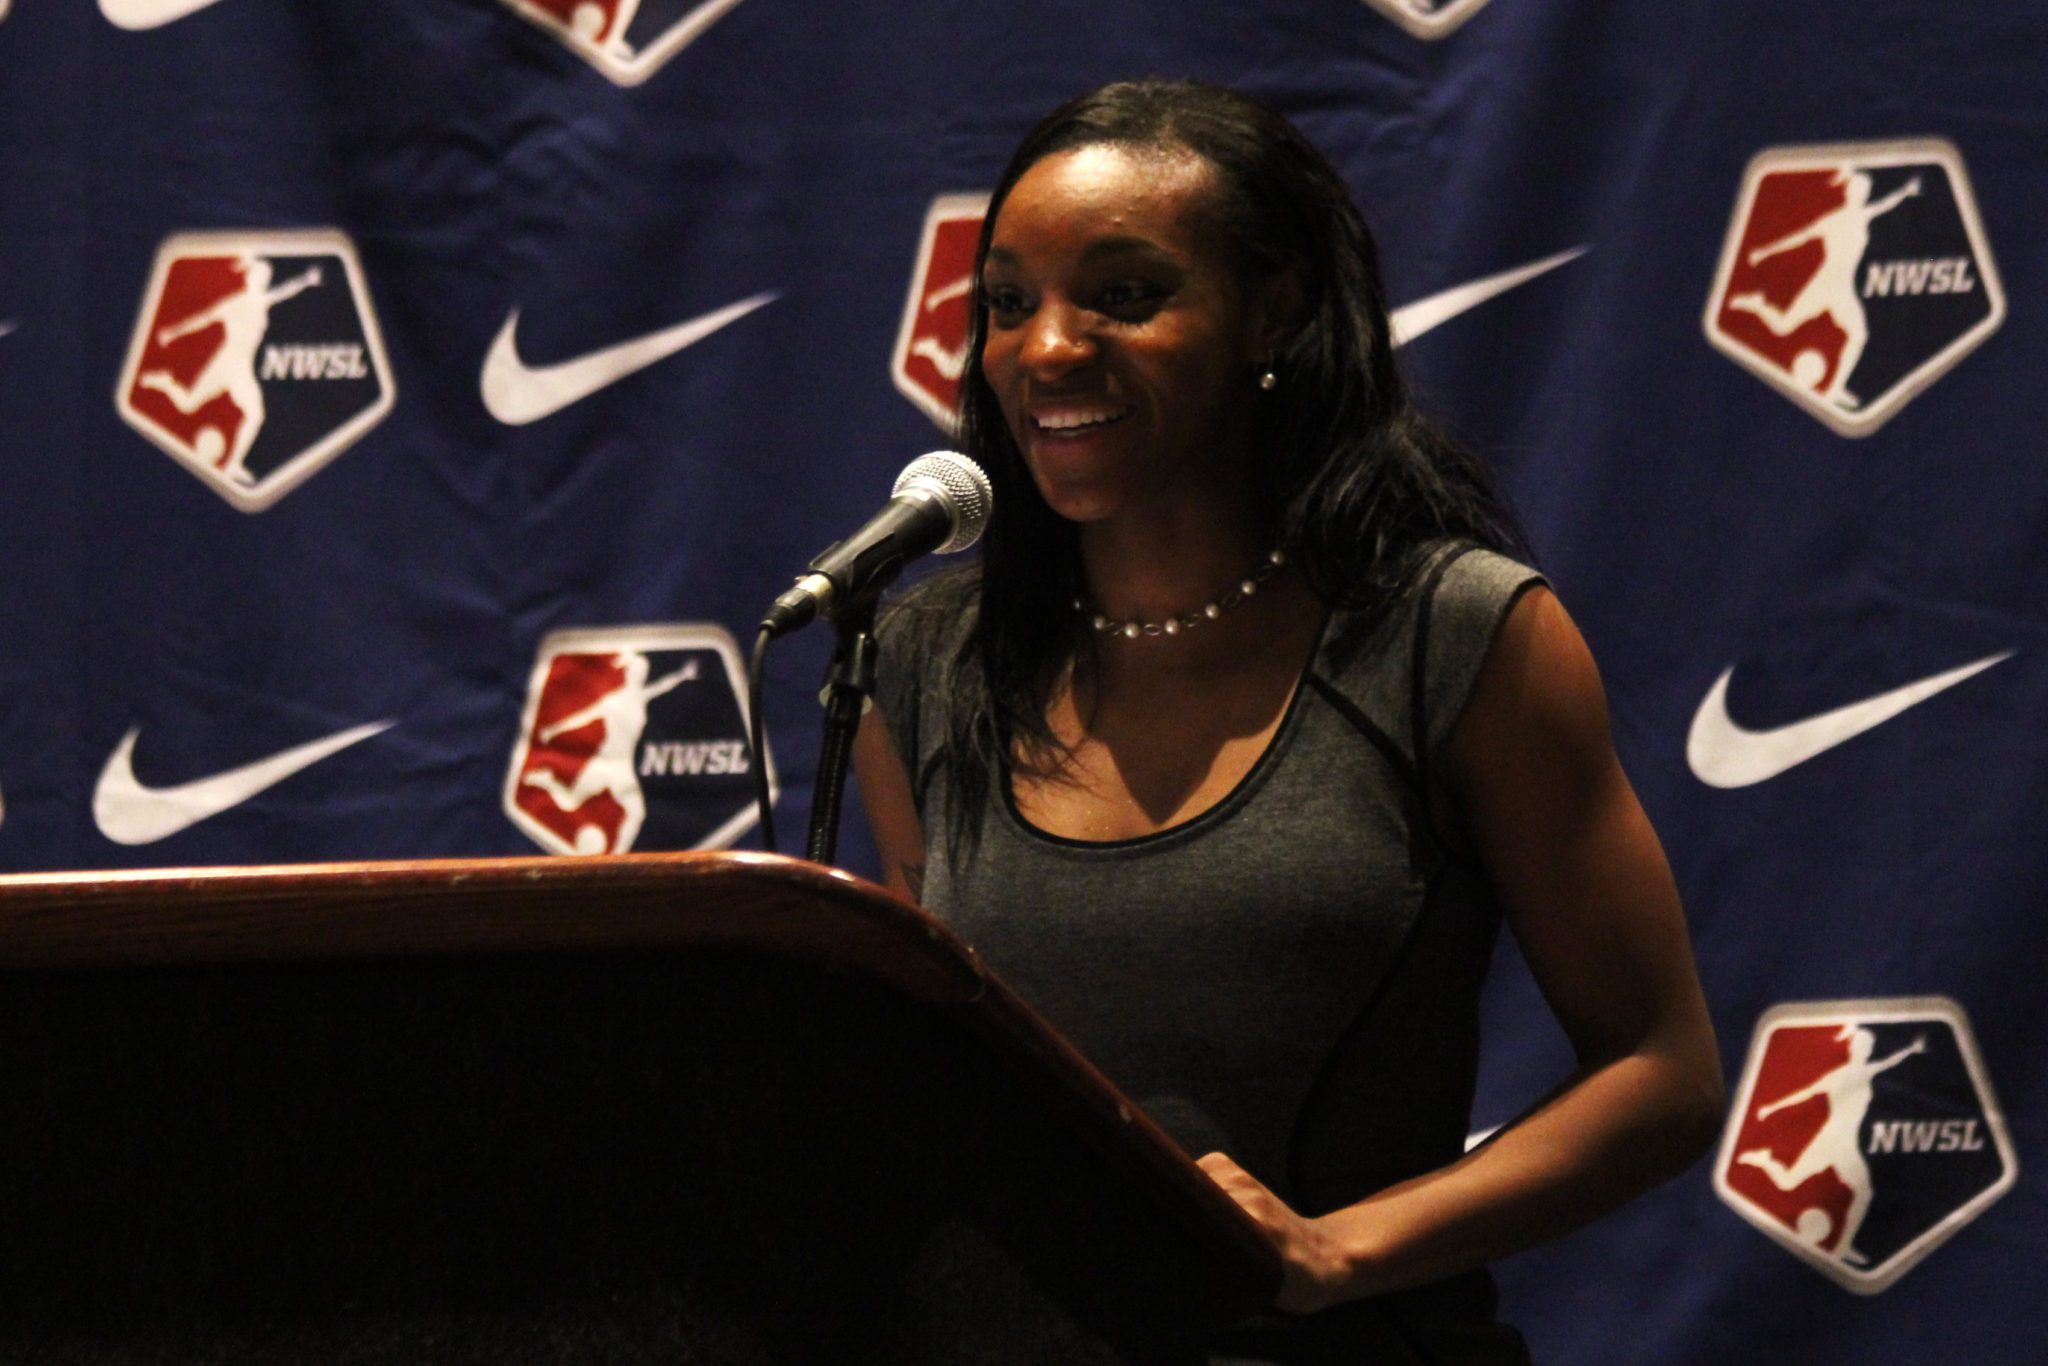 In two seasons Crystal Dunn went from No. 1 overall pick to likely NWSL MVP.  (Photo by Meg Linehan for The Equalizer)